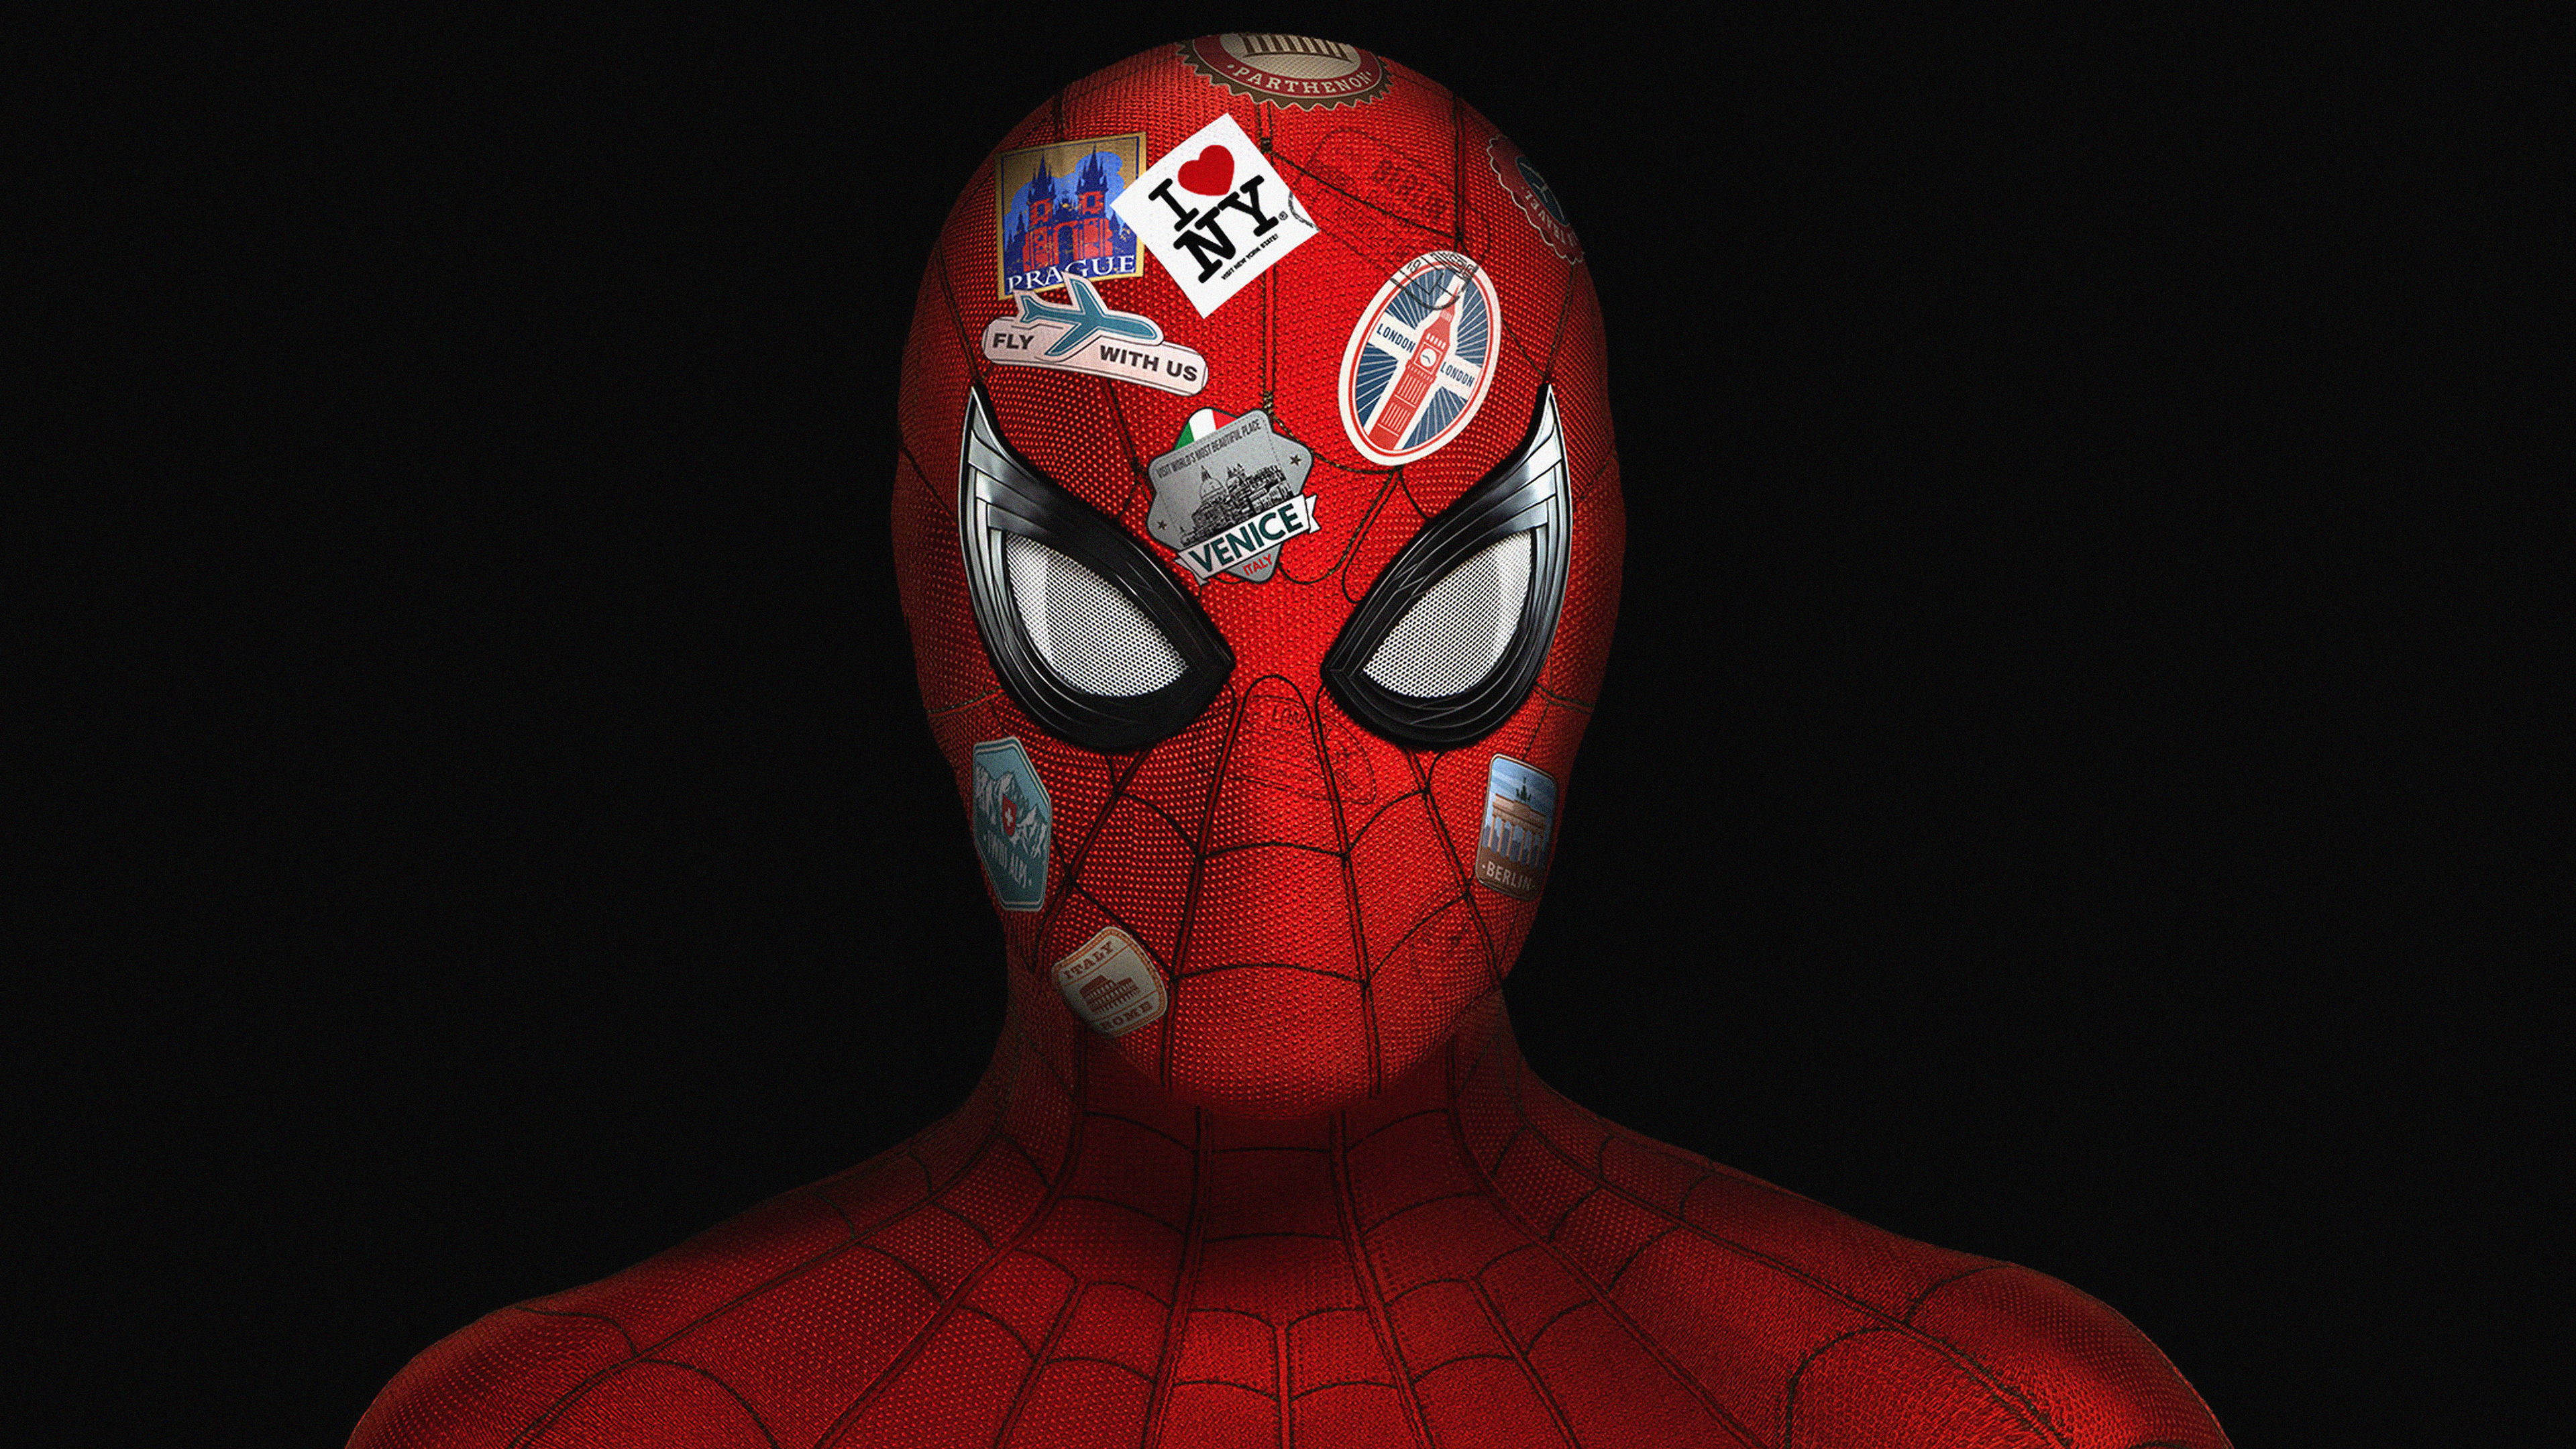 spider far from home 1563220802 - Spider Far From Home - tom holland wallpapers, superheroes wallpapers, spiderman wallpapers, spiderman far from home wallpapers, movies wallpapers, hd-wallpapers, 5k wallpapers, 4k-wallpapers, 2019 movies wallpapers